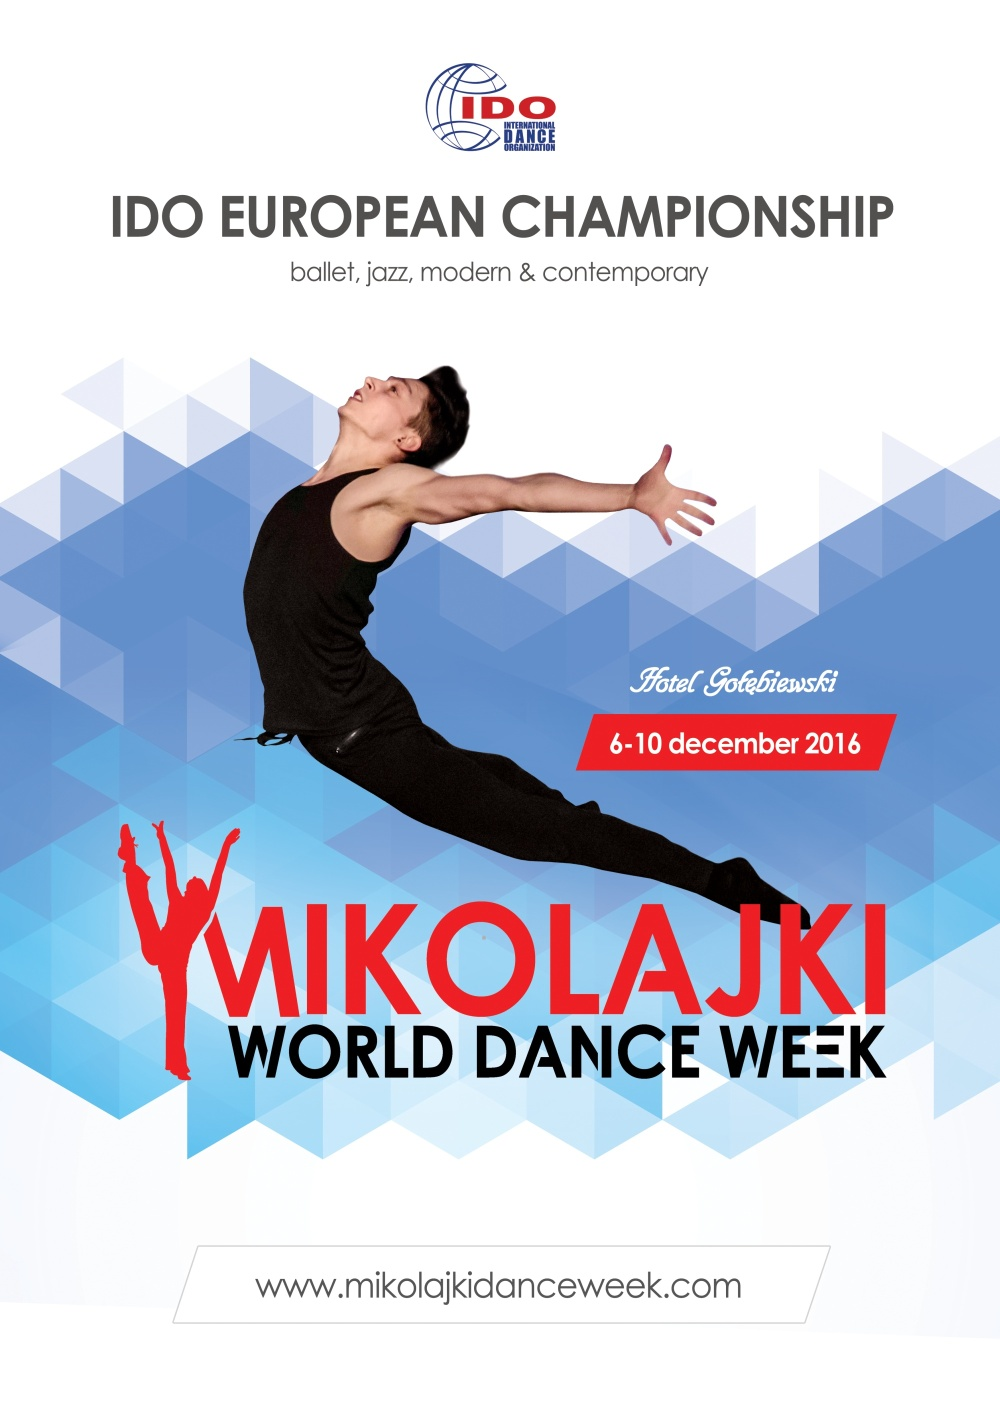 Mikolajki 2016 Dance Week